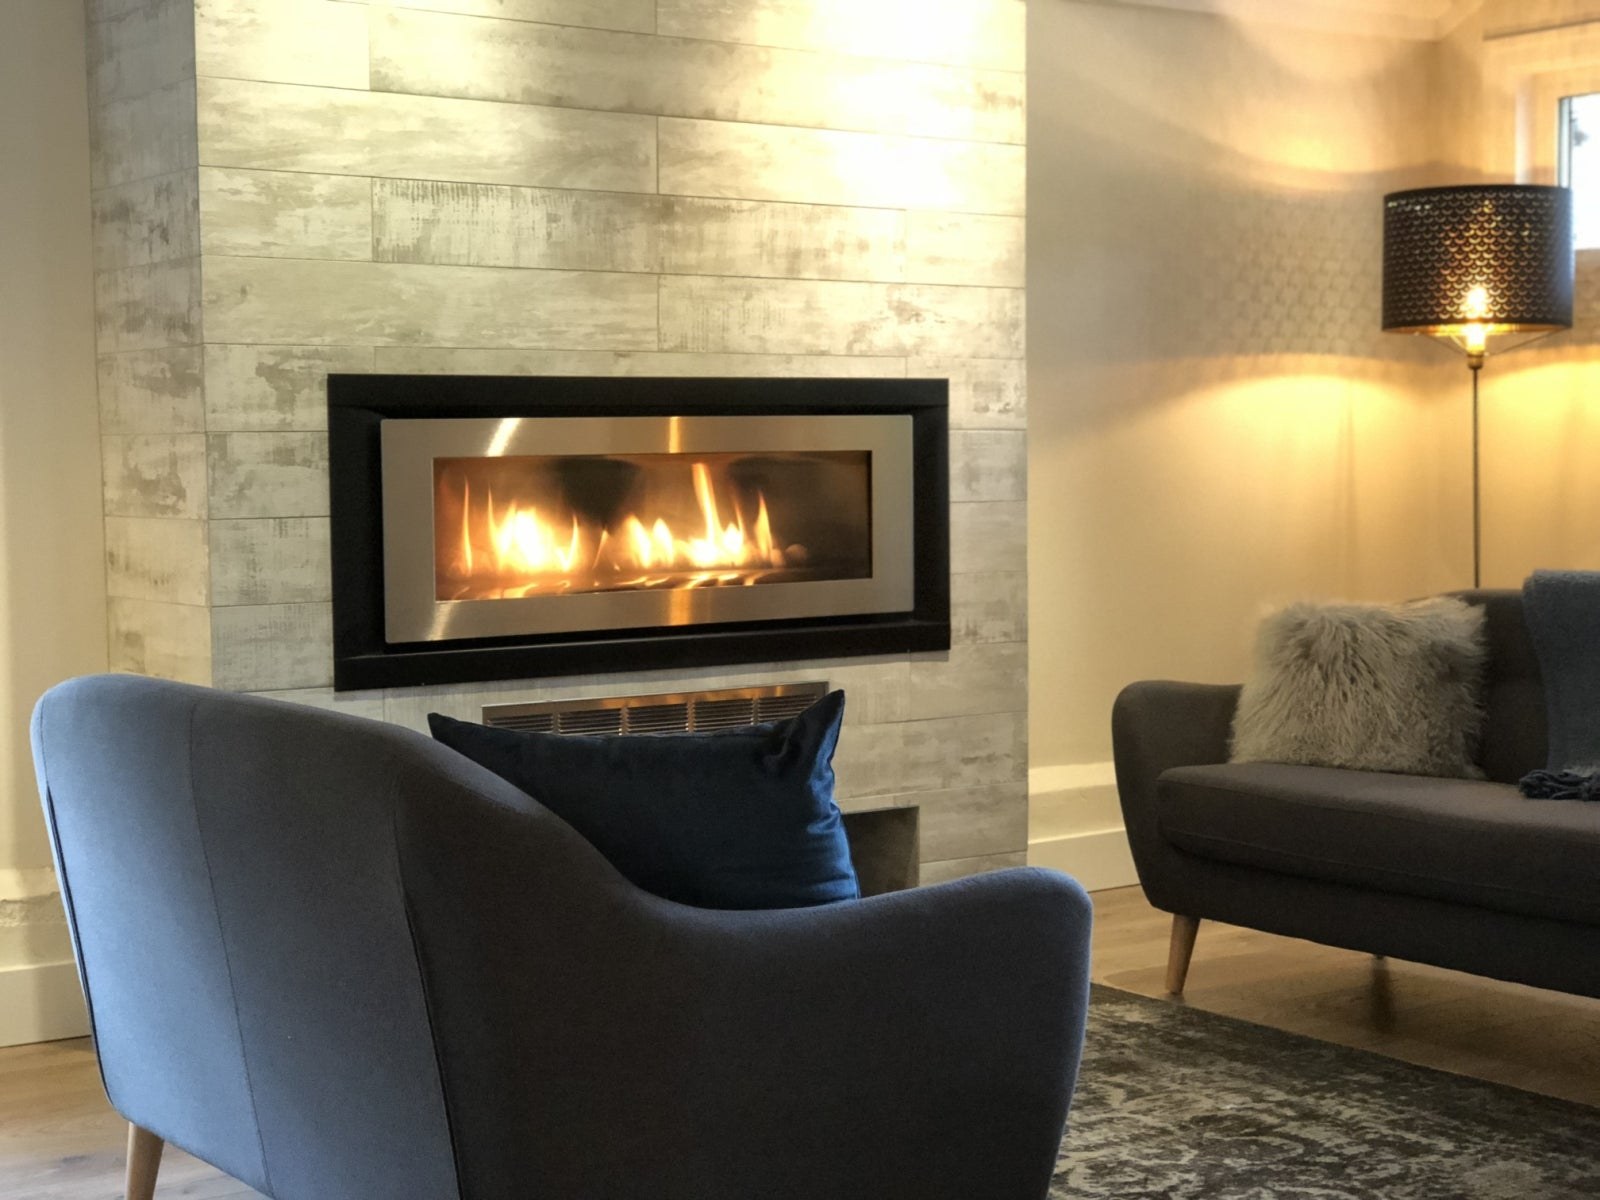 boulevard fireplaces properties story interior seasons hollow fireplace stone two development four